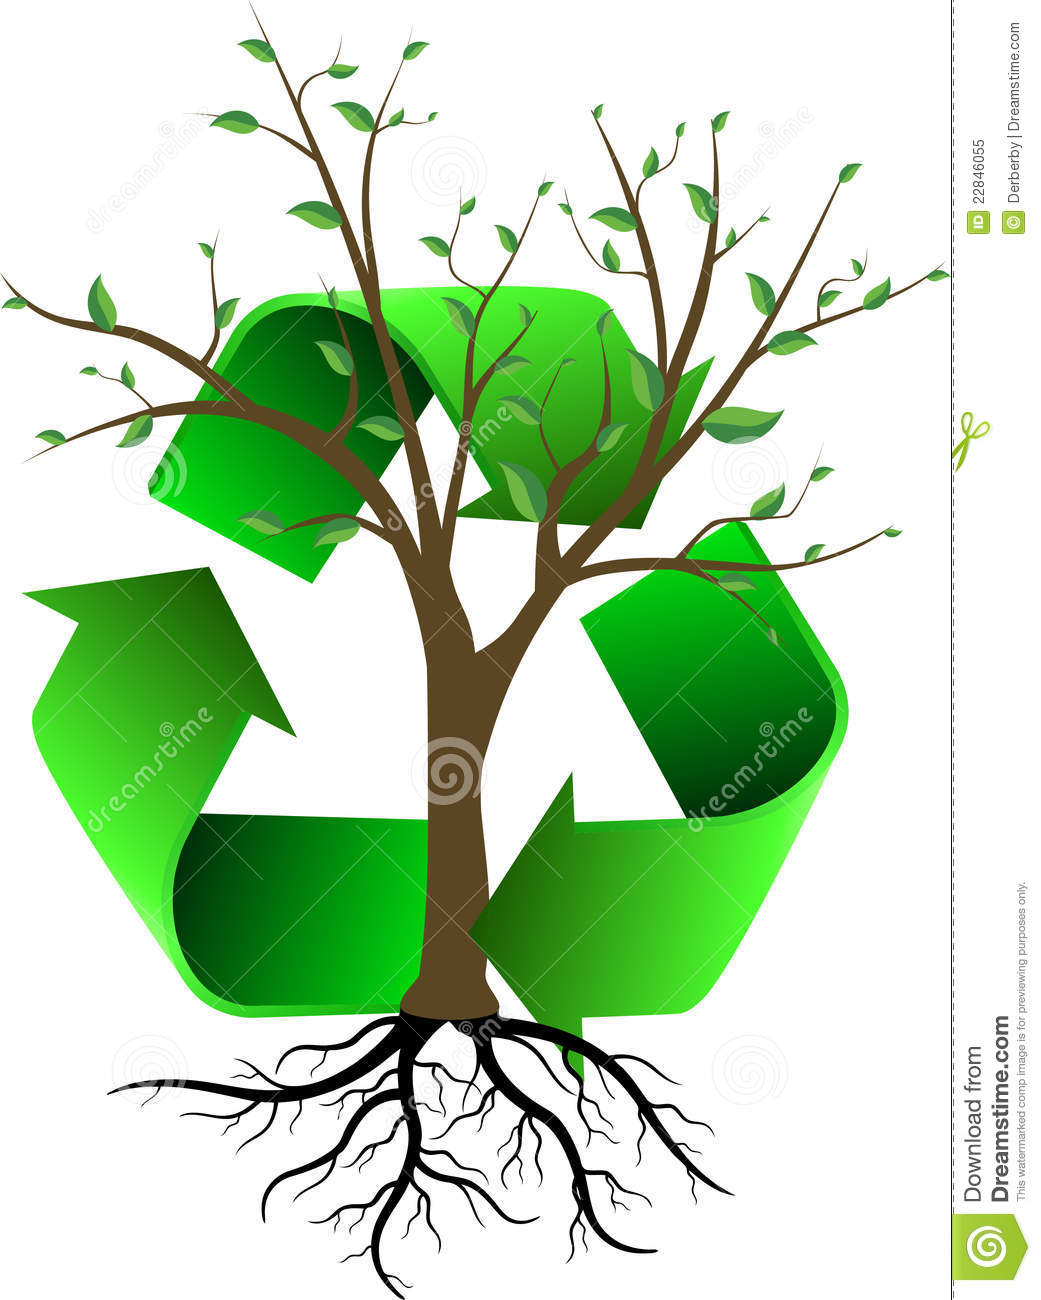 Christmas Tree Recycling Greenwich : Recycling trees images how tree works